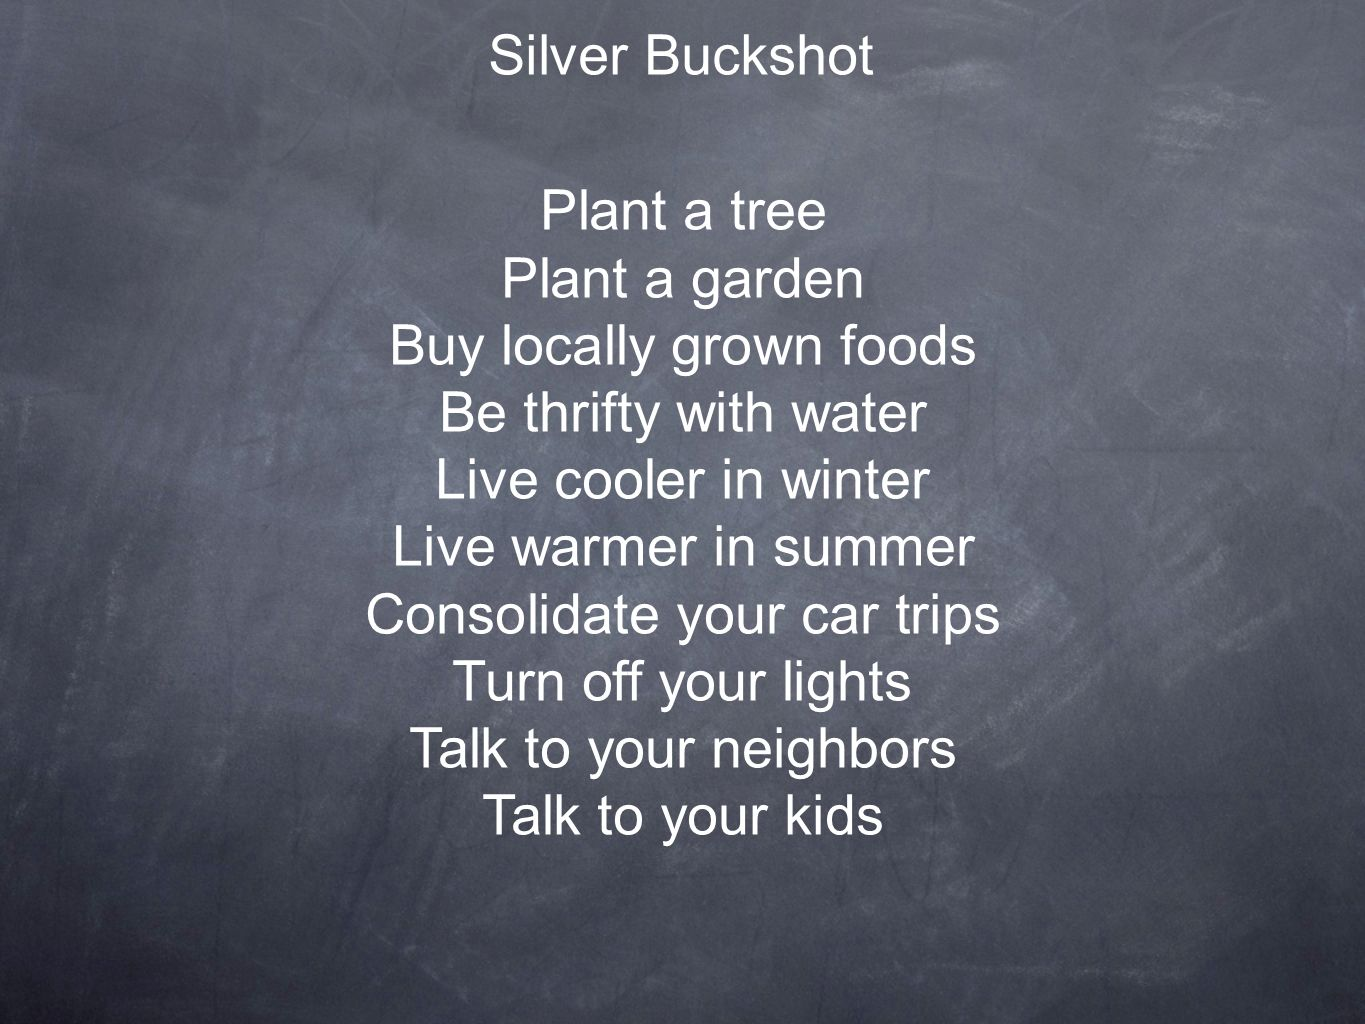 Silver Buckshot Plant a tree Plant a garden Buy locally grown foods Be thrifty with water Live cooler in winter Live warmer in summer Consolidate your car trips Turn off your lights Talk to your neighbors Talk to your kids